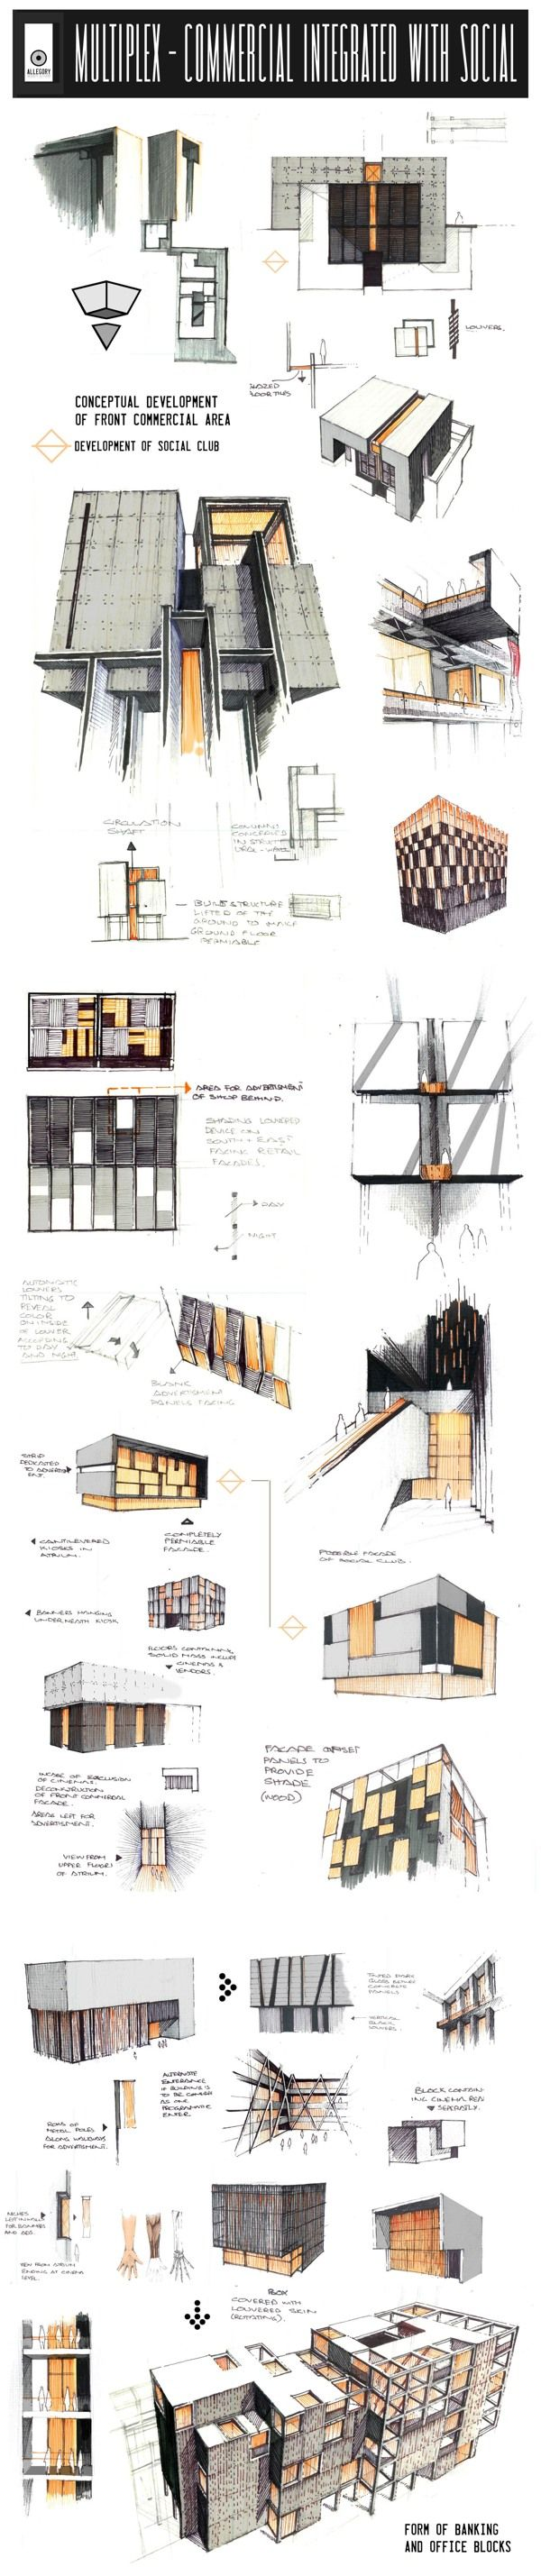 http://arch-student.com/ Professional Design Proposals - Under-Development by Anique Azhar, via Behance